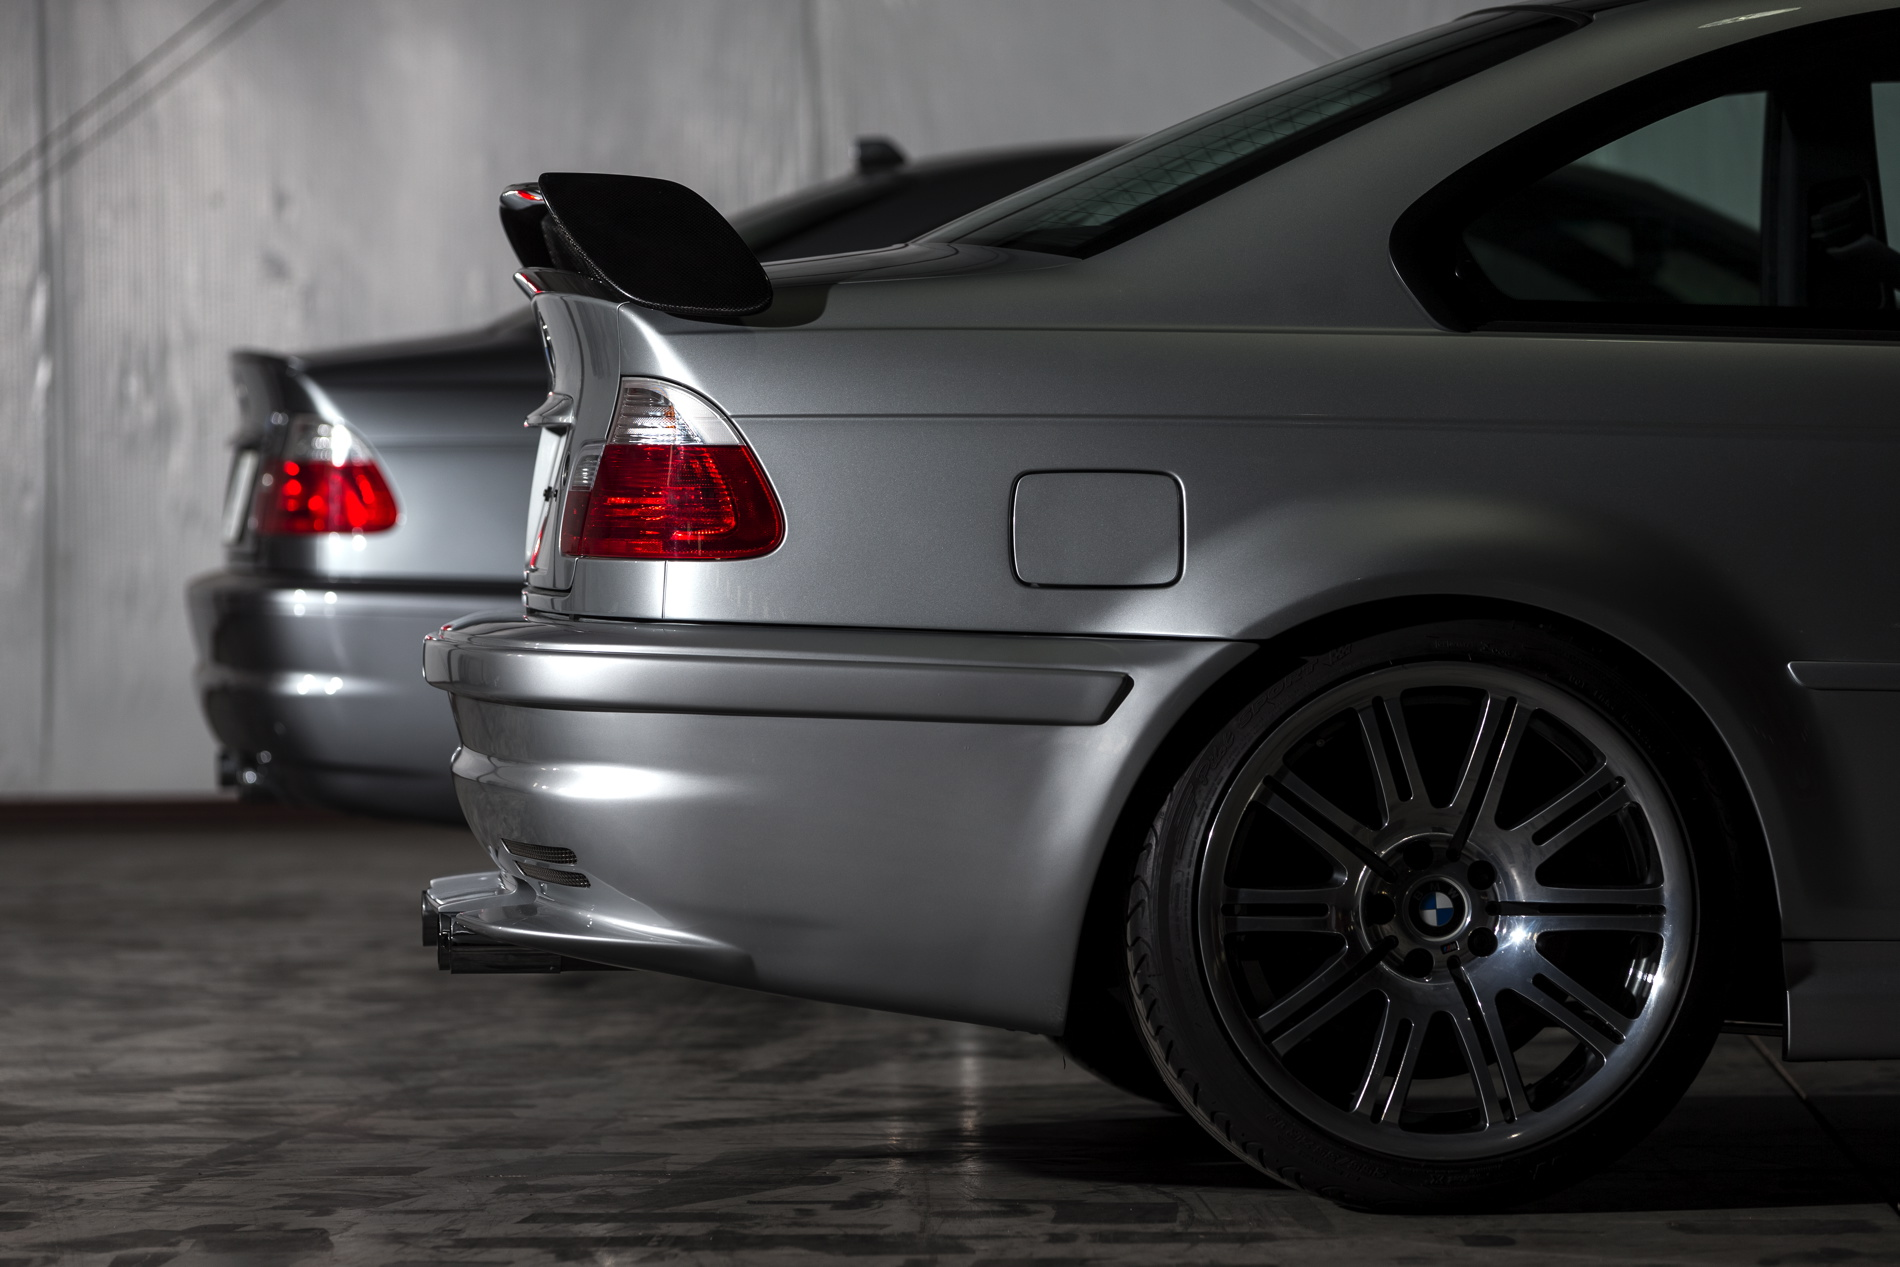 Bmw E46 M3 Gtr One Of The Most Limited Production Models Ever